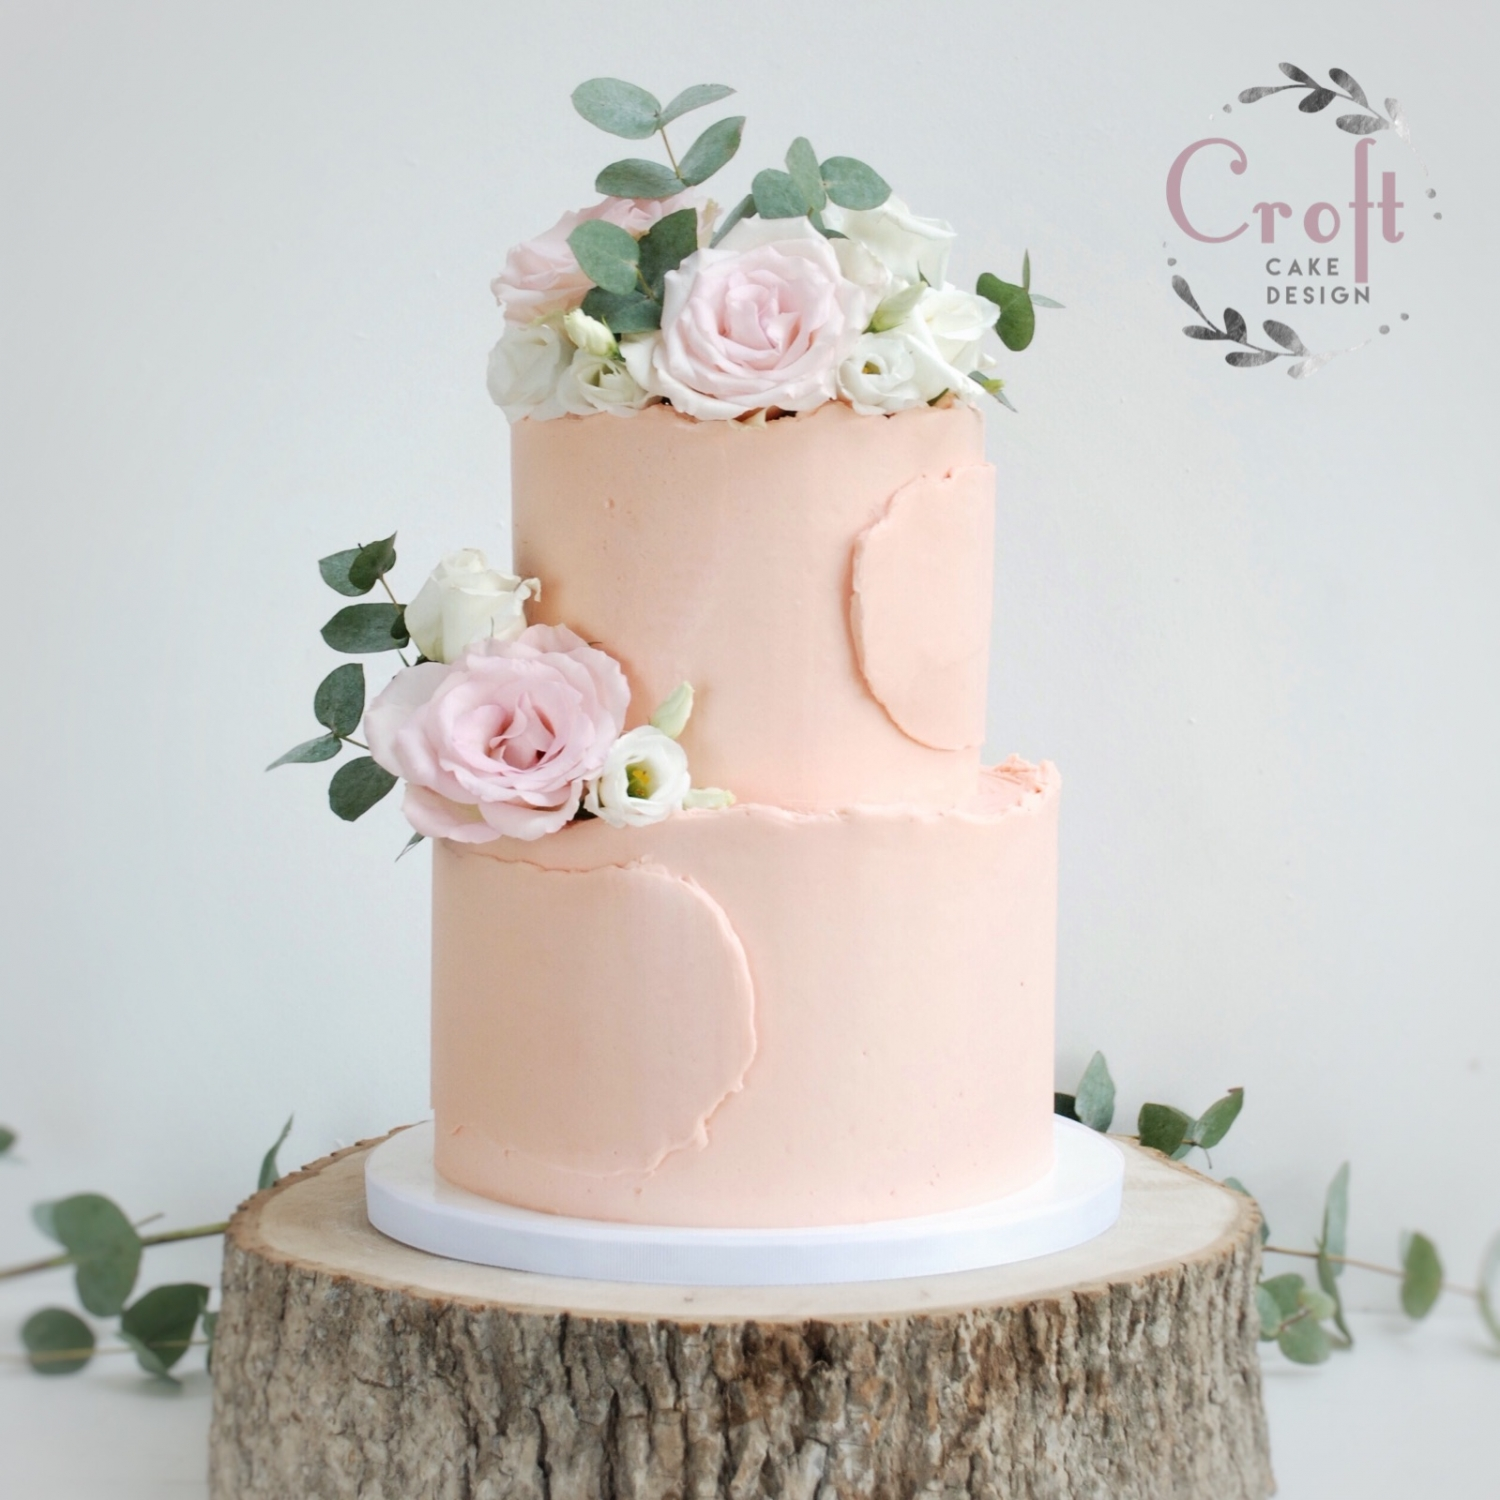 Buttercream wedding cake 2 tier with roses and eucalyptus